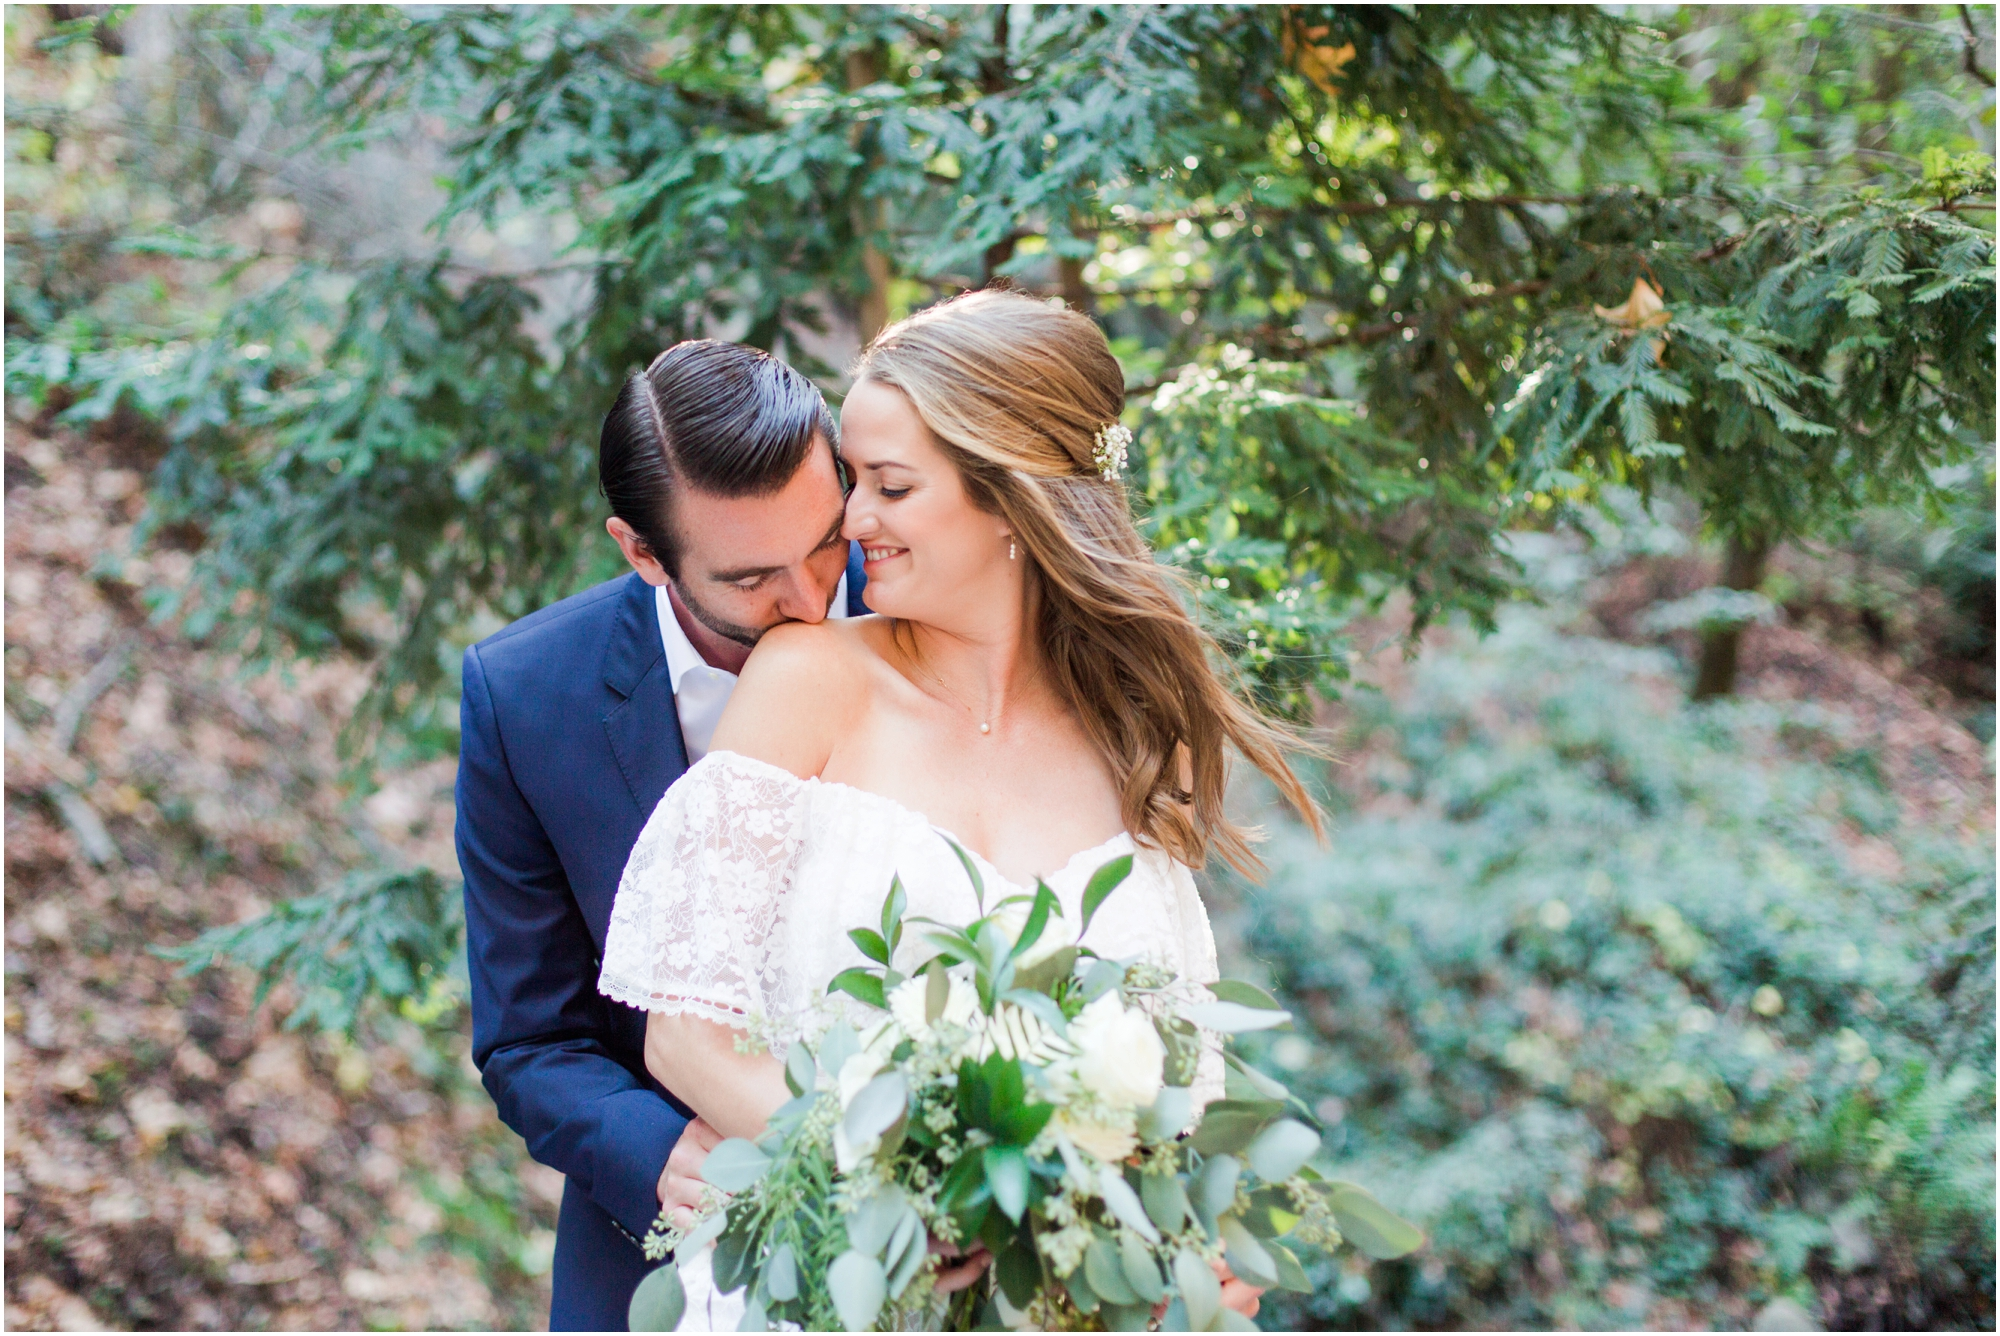 Saratoga+Springs+wedding+pictures+by+Briana+Calderon+Photography_0344.jpg